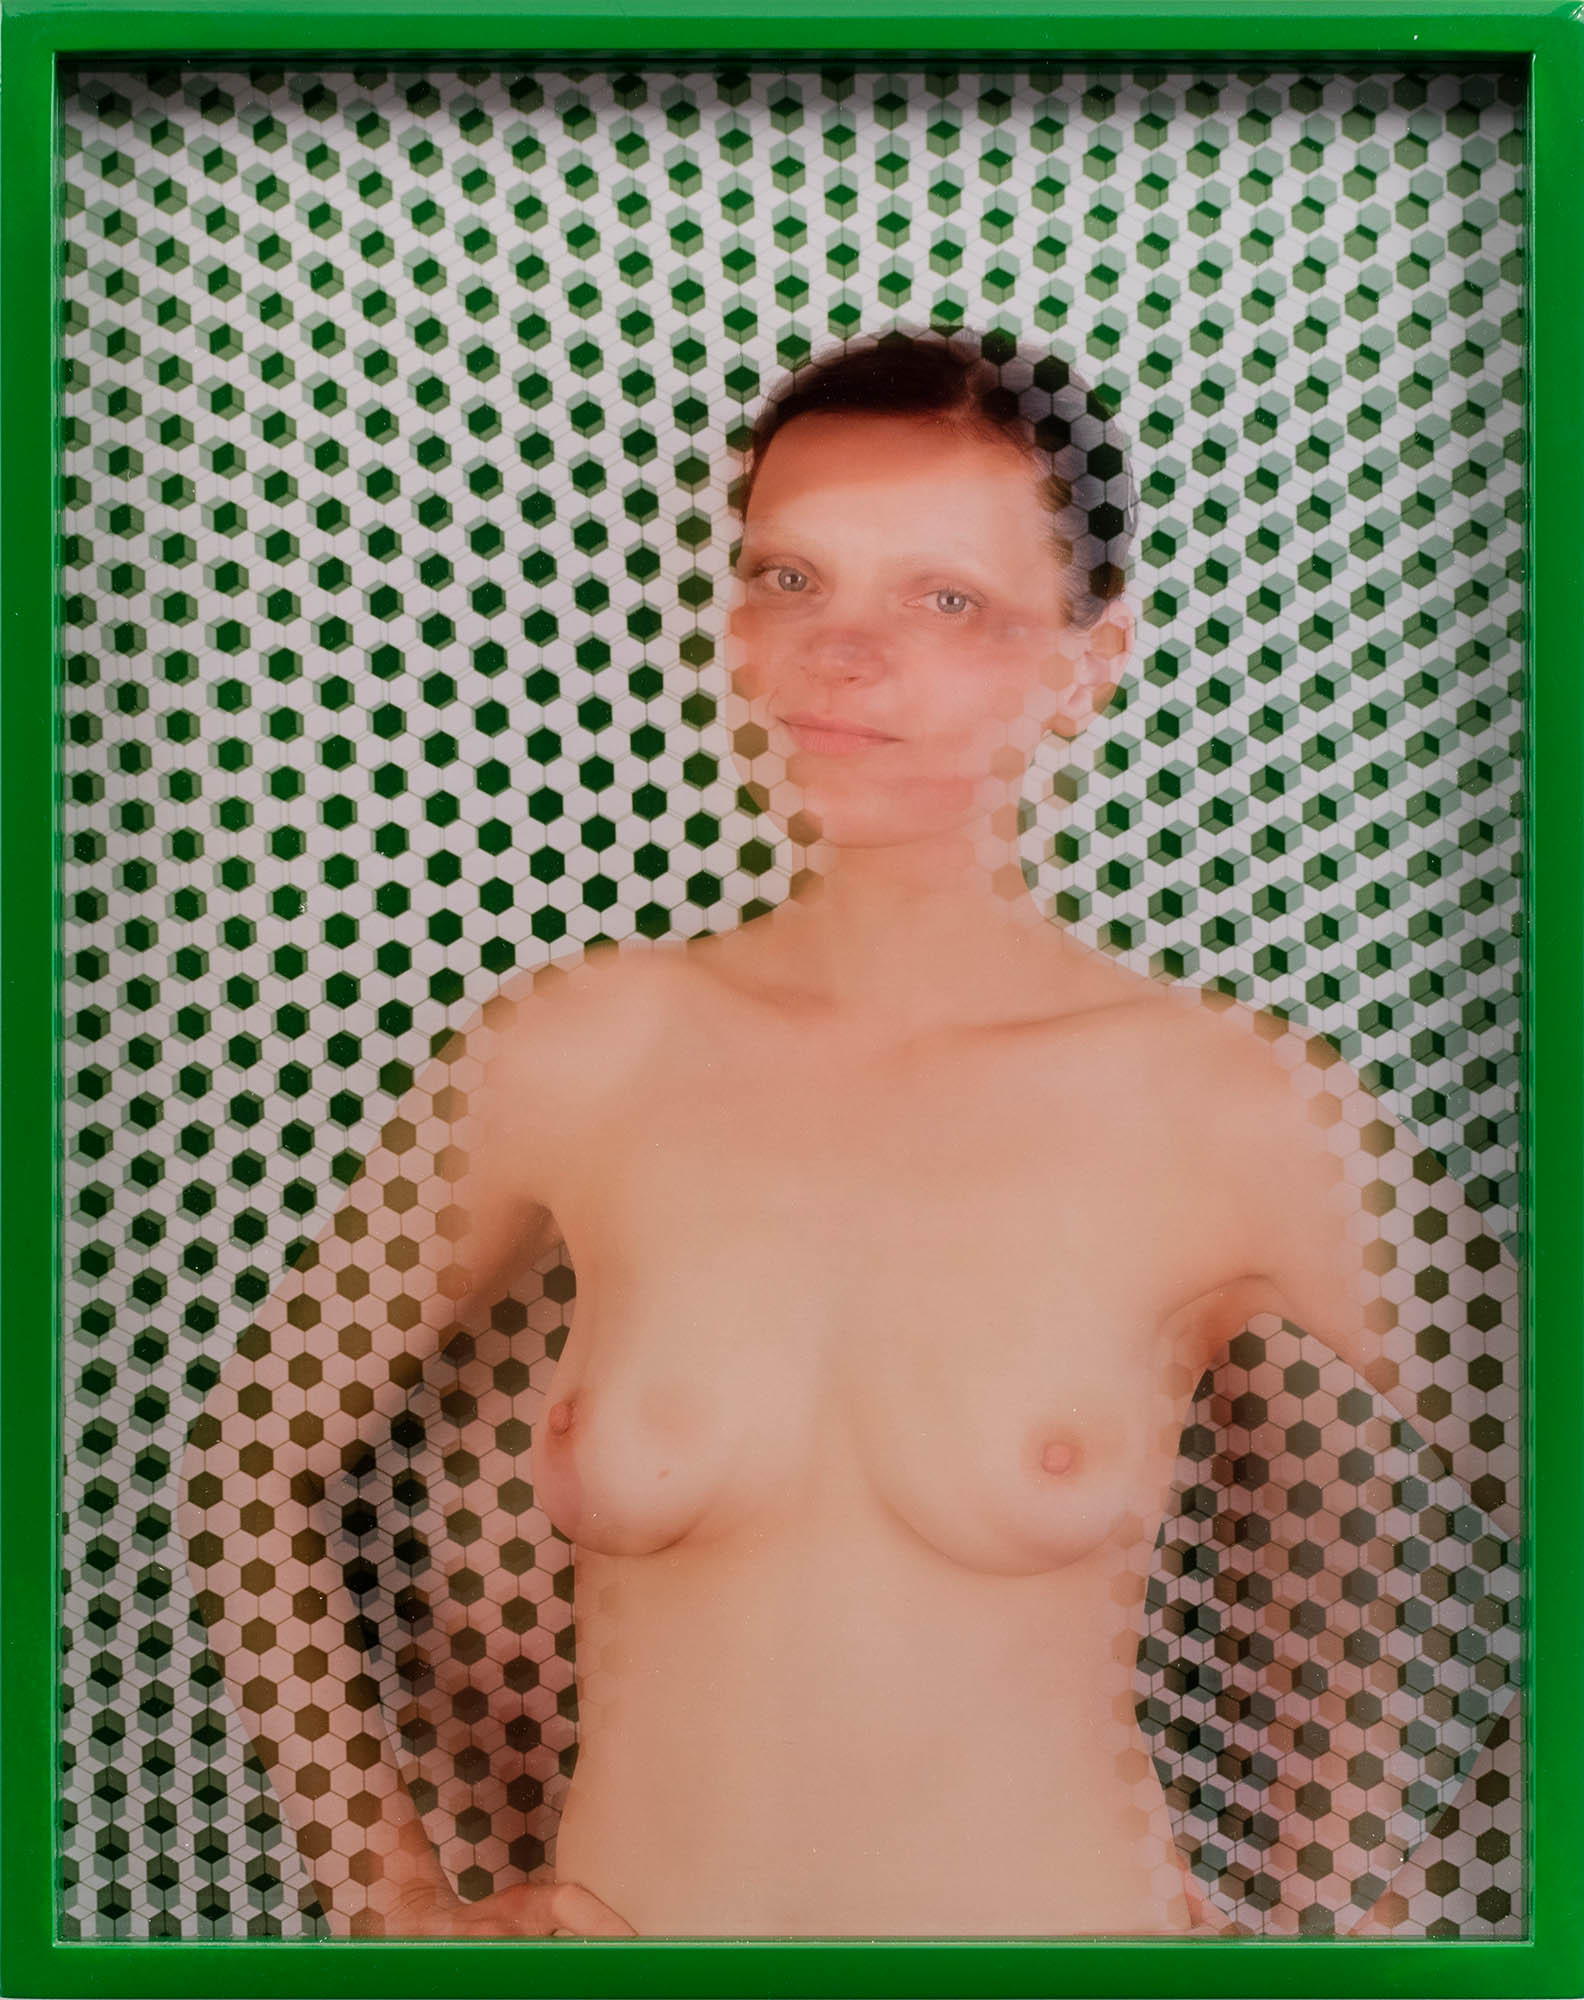 Image of Elad Lassry, Guinevere (Green), 2009